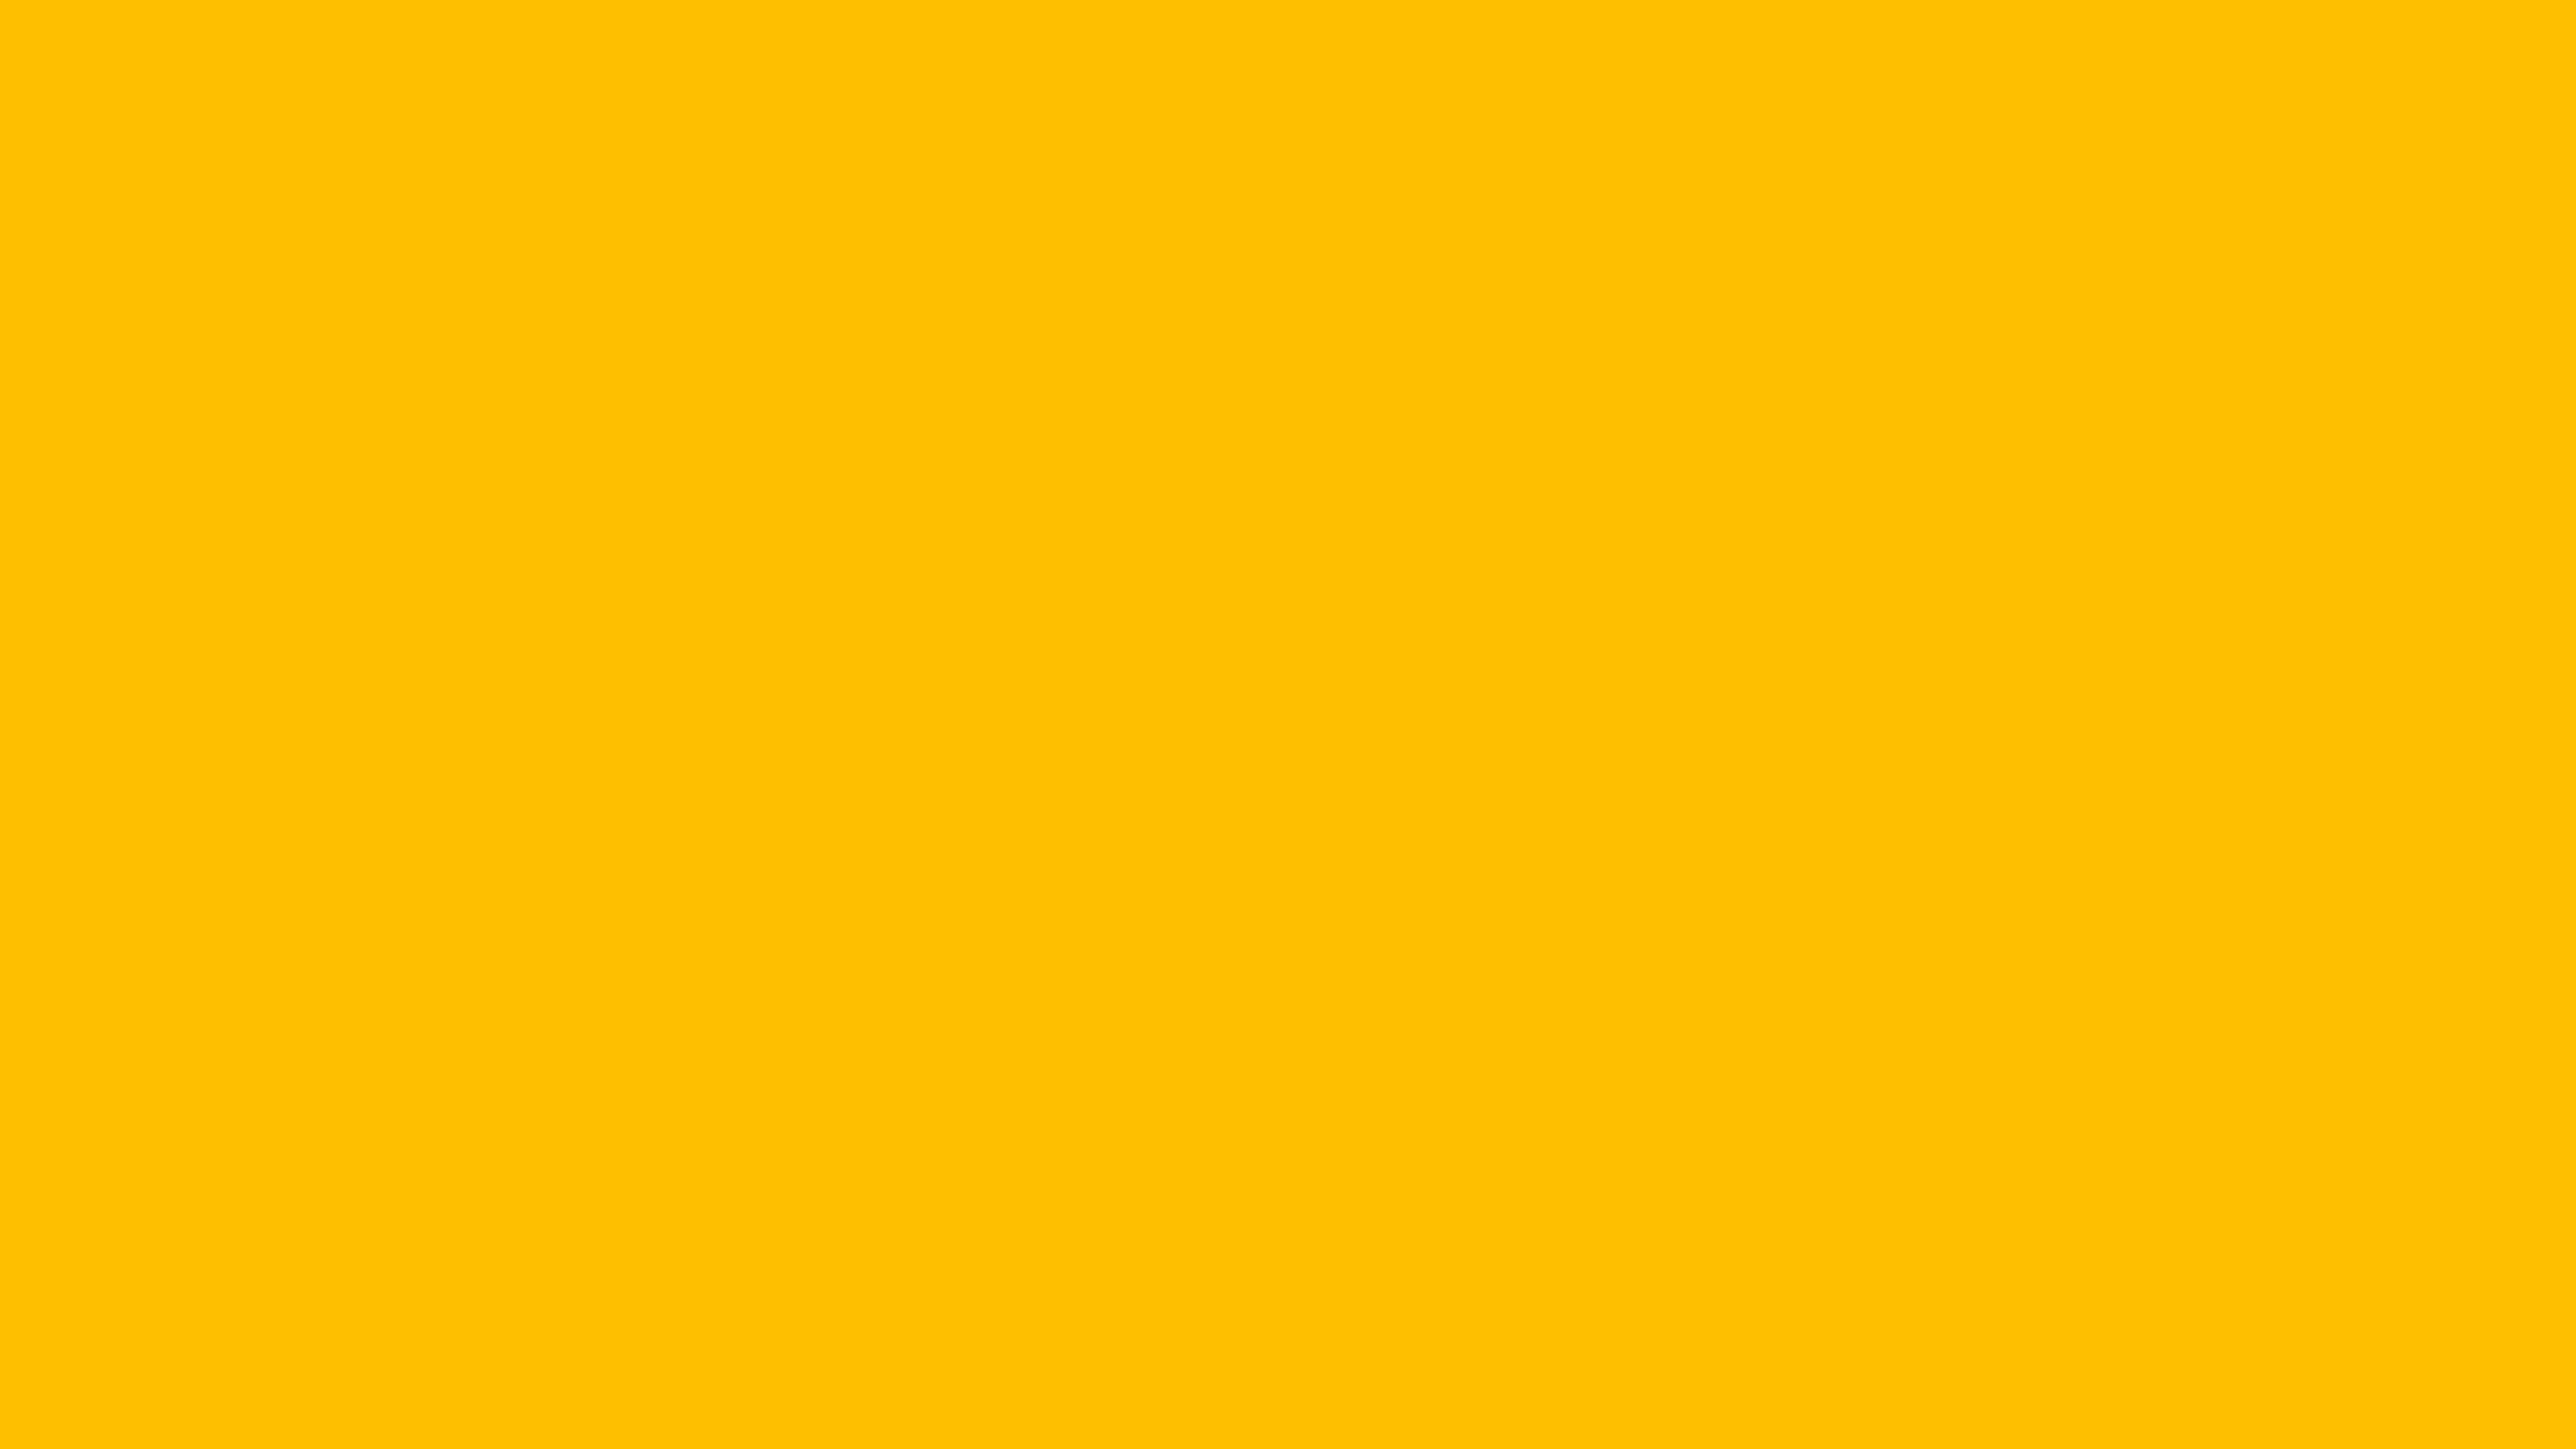 3840x2160 Amber Solid Color Background